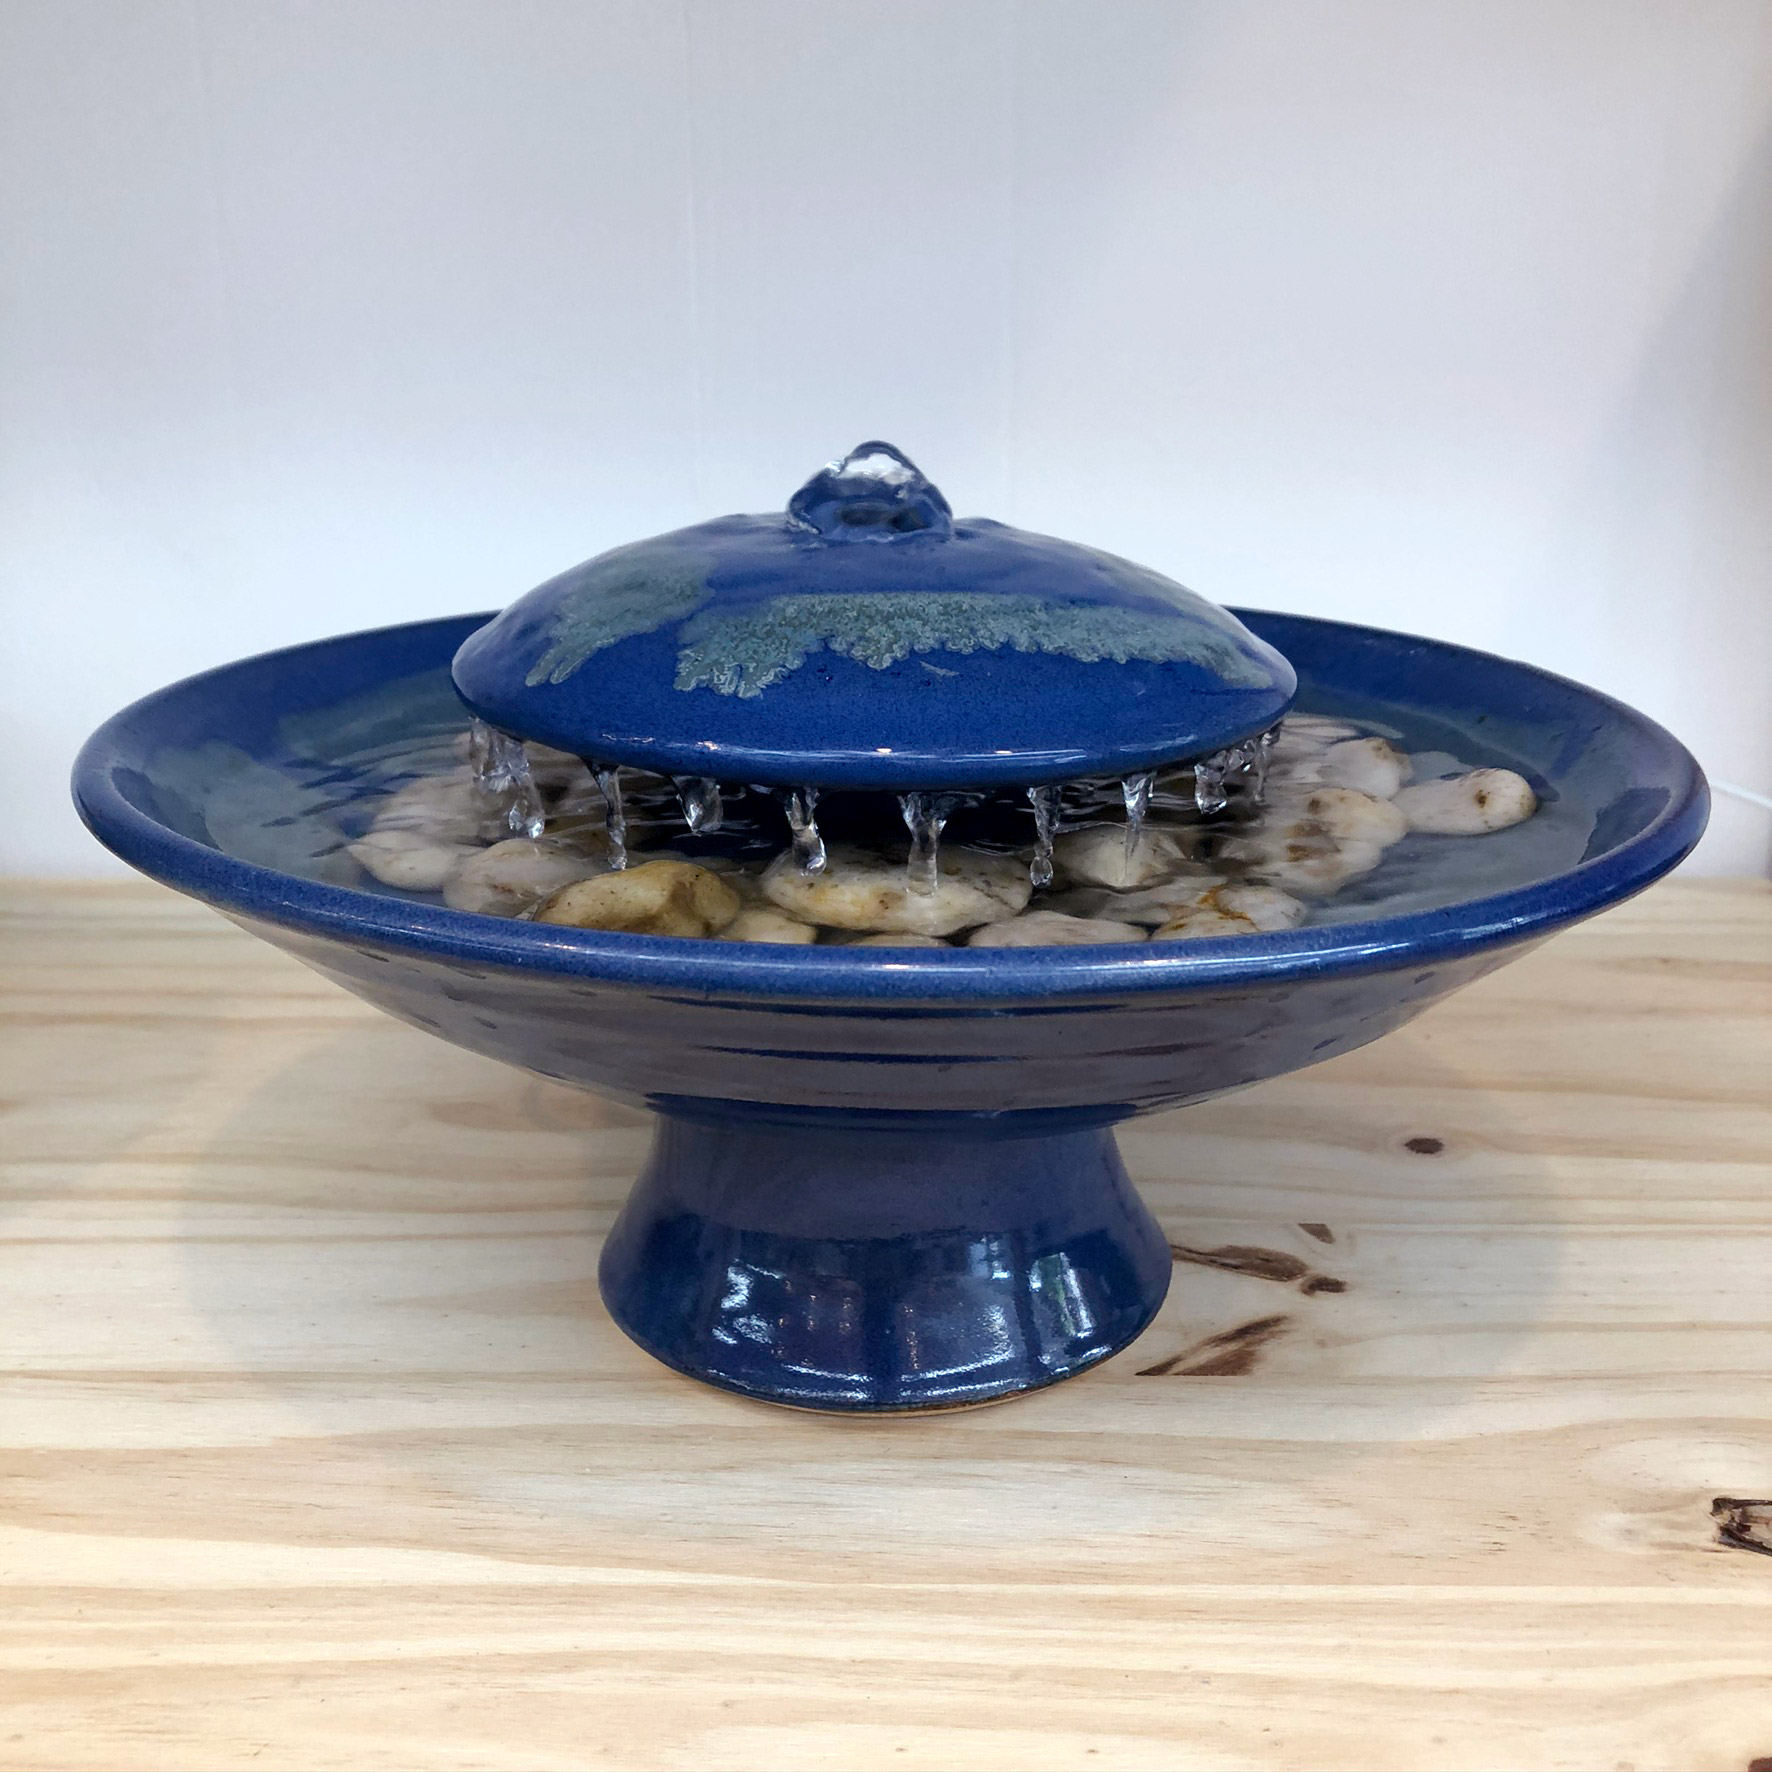 Ceramic tabletop fountain - side view - blue